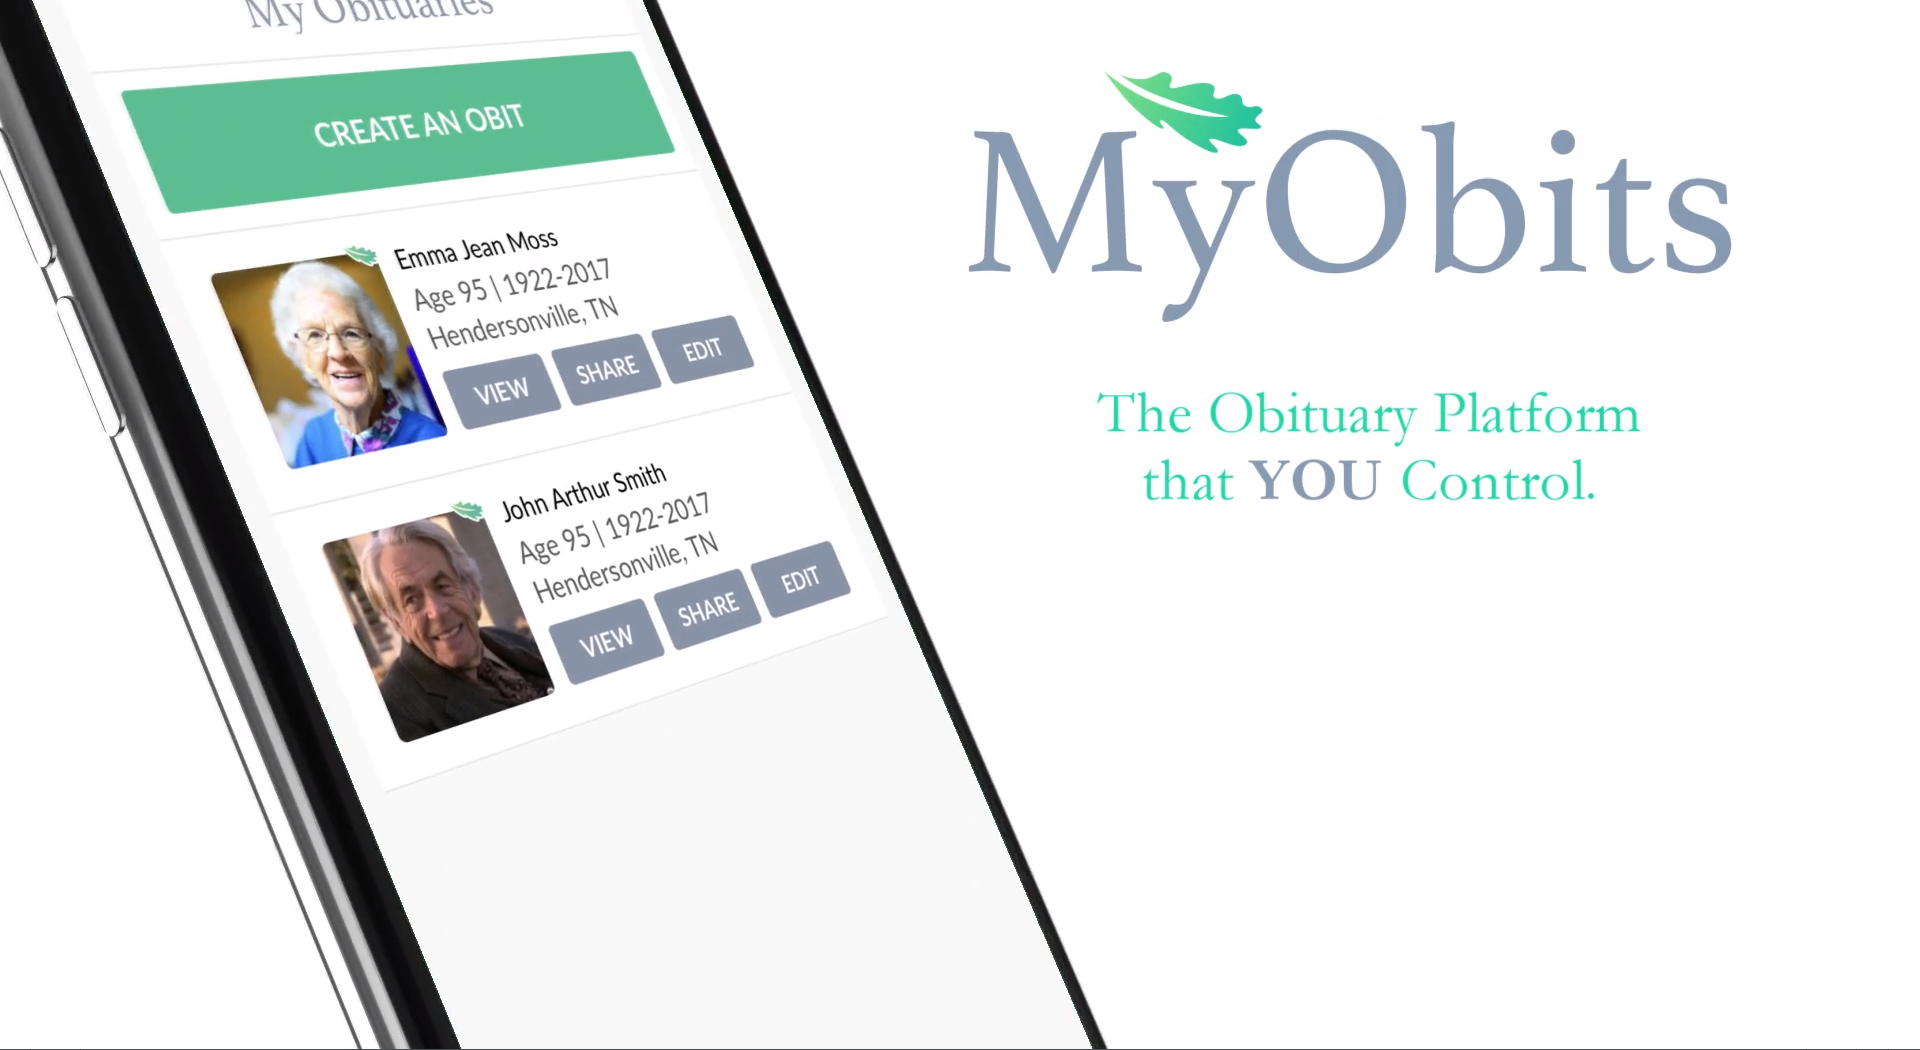 Myobits Giving The Obituary Back To The People